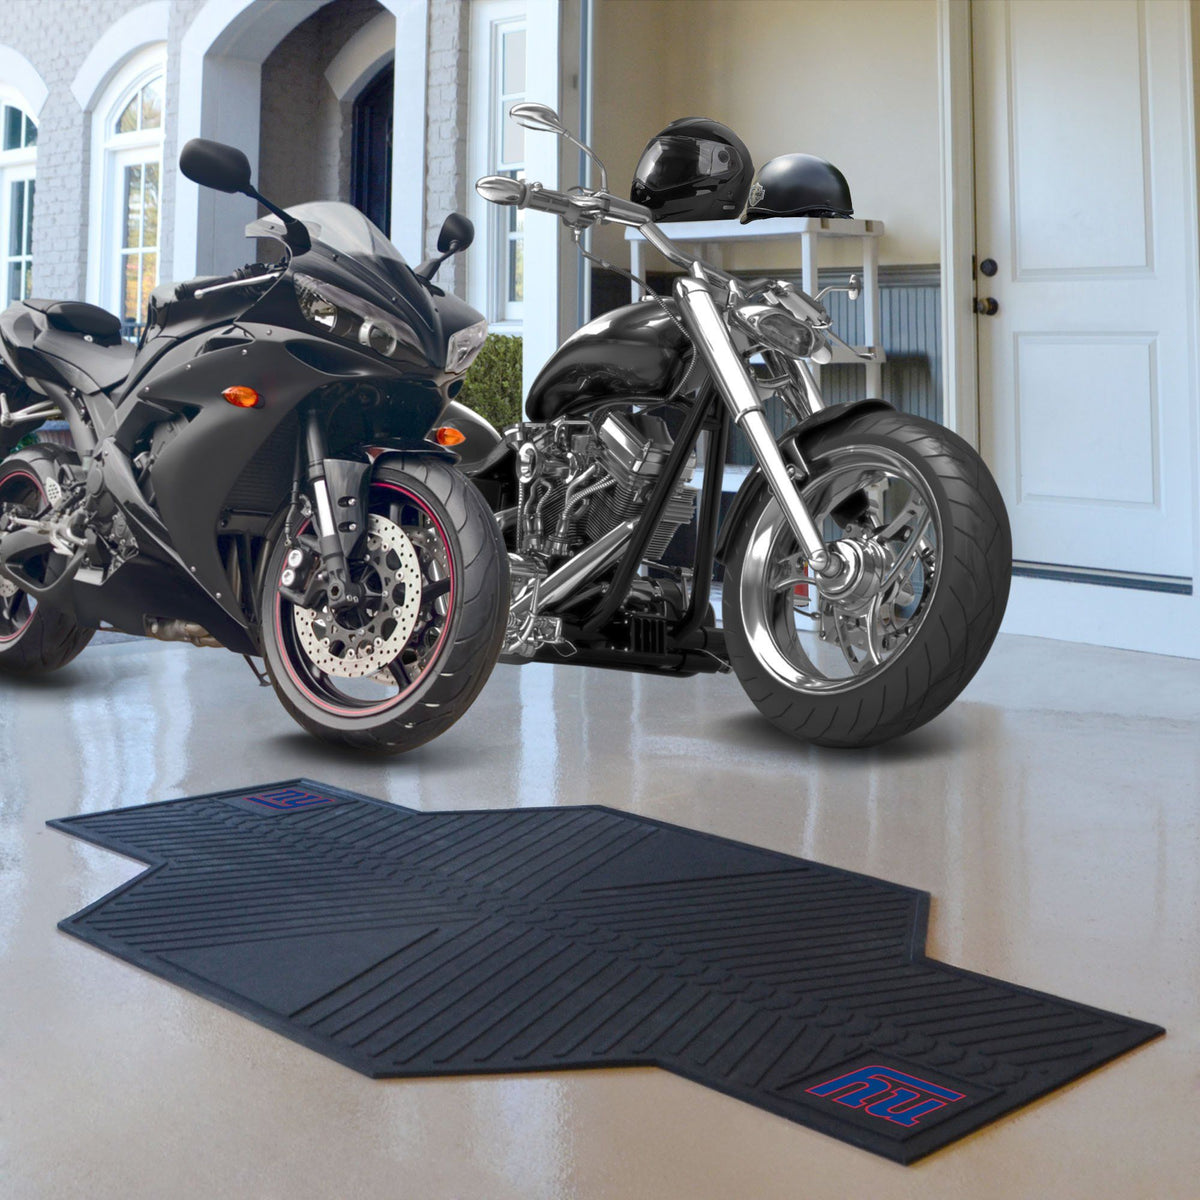 "NFL - Motorcycle Mat, 82.5"" x 42"" NFL Mats, Motorcycle Accessory, Motorcycle Mat, NFL, Auto Fan Mats New York Giants"